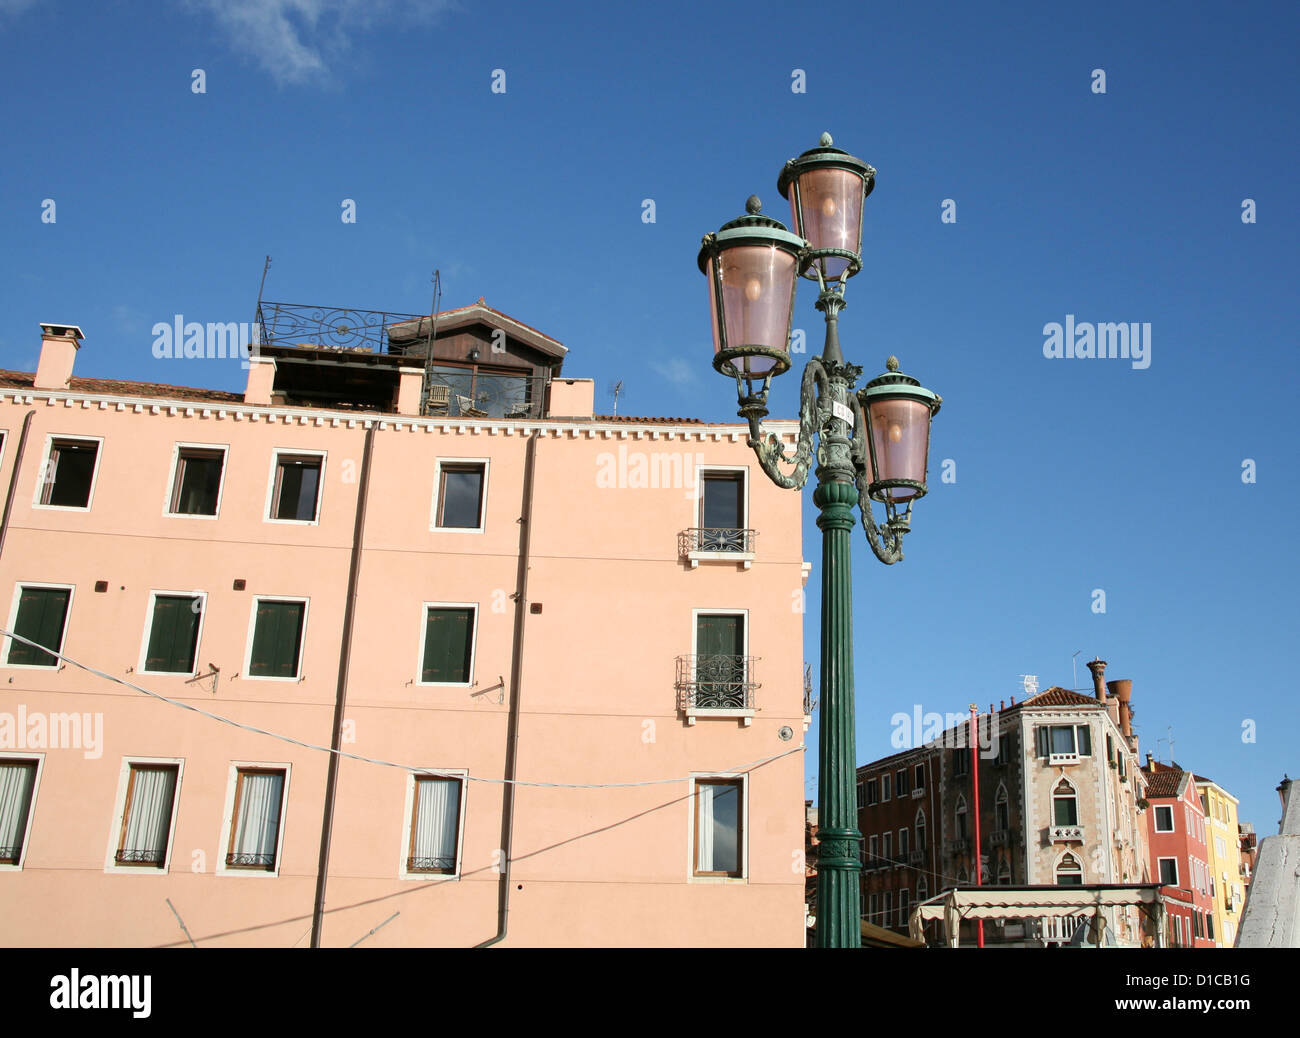 Streetlamp and building under sunny blue sky, Venice, Italy, low angle view - Stock Image